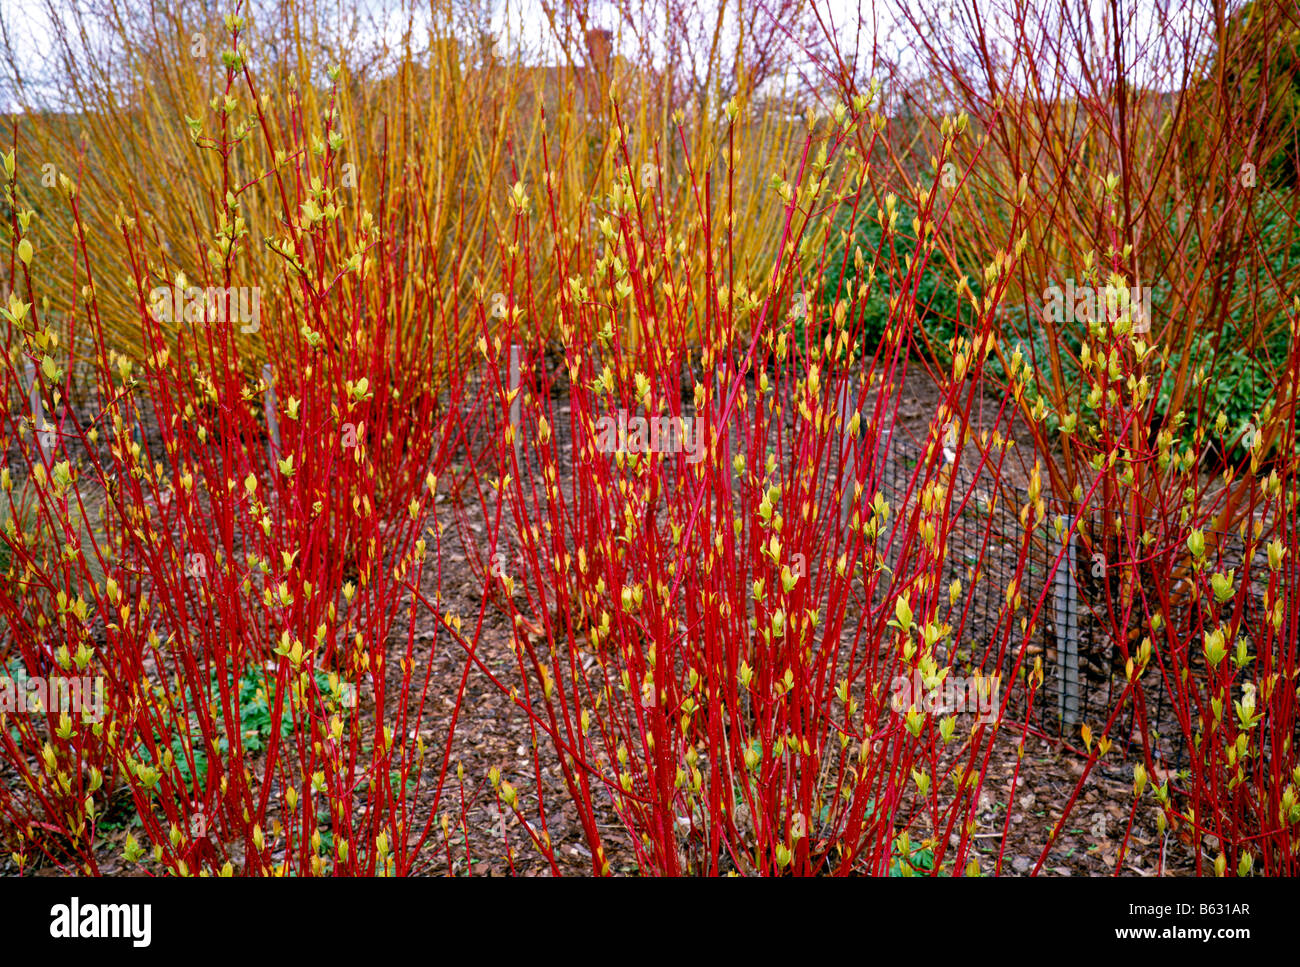 Cornus alba Sibirica in winter - Stock Image